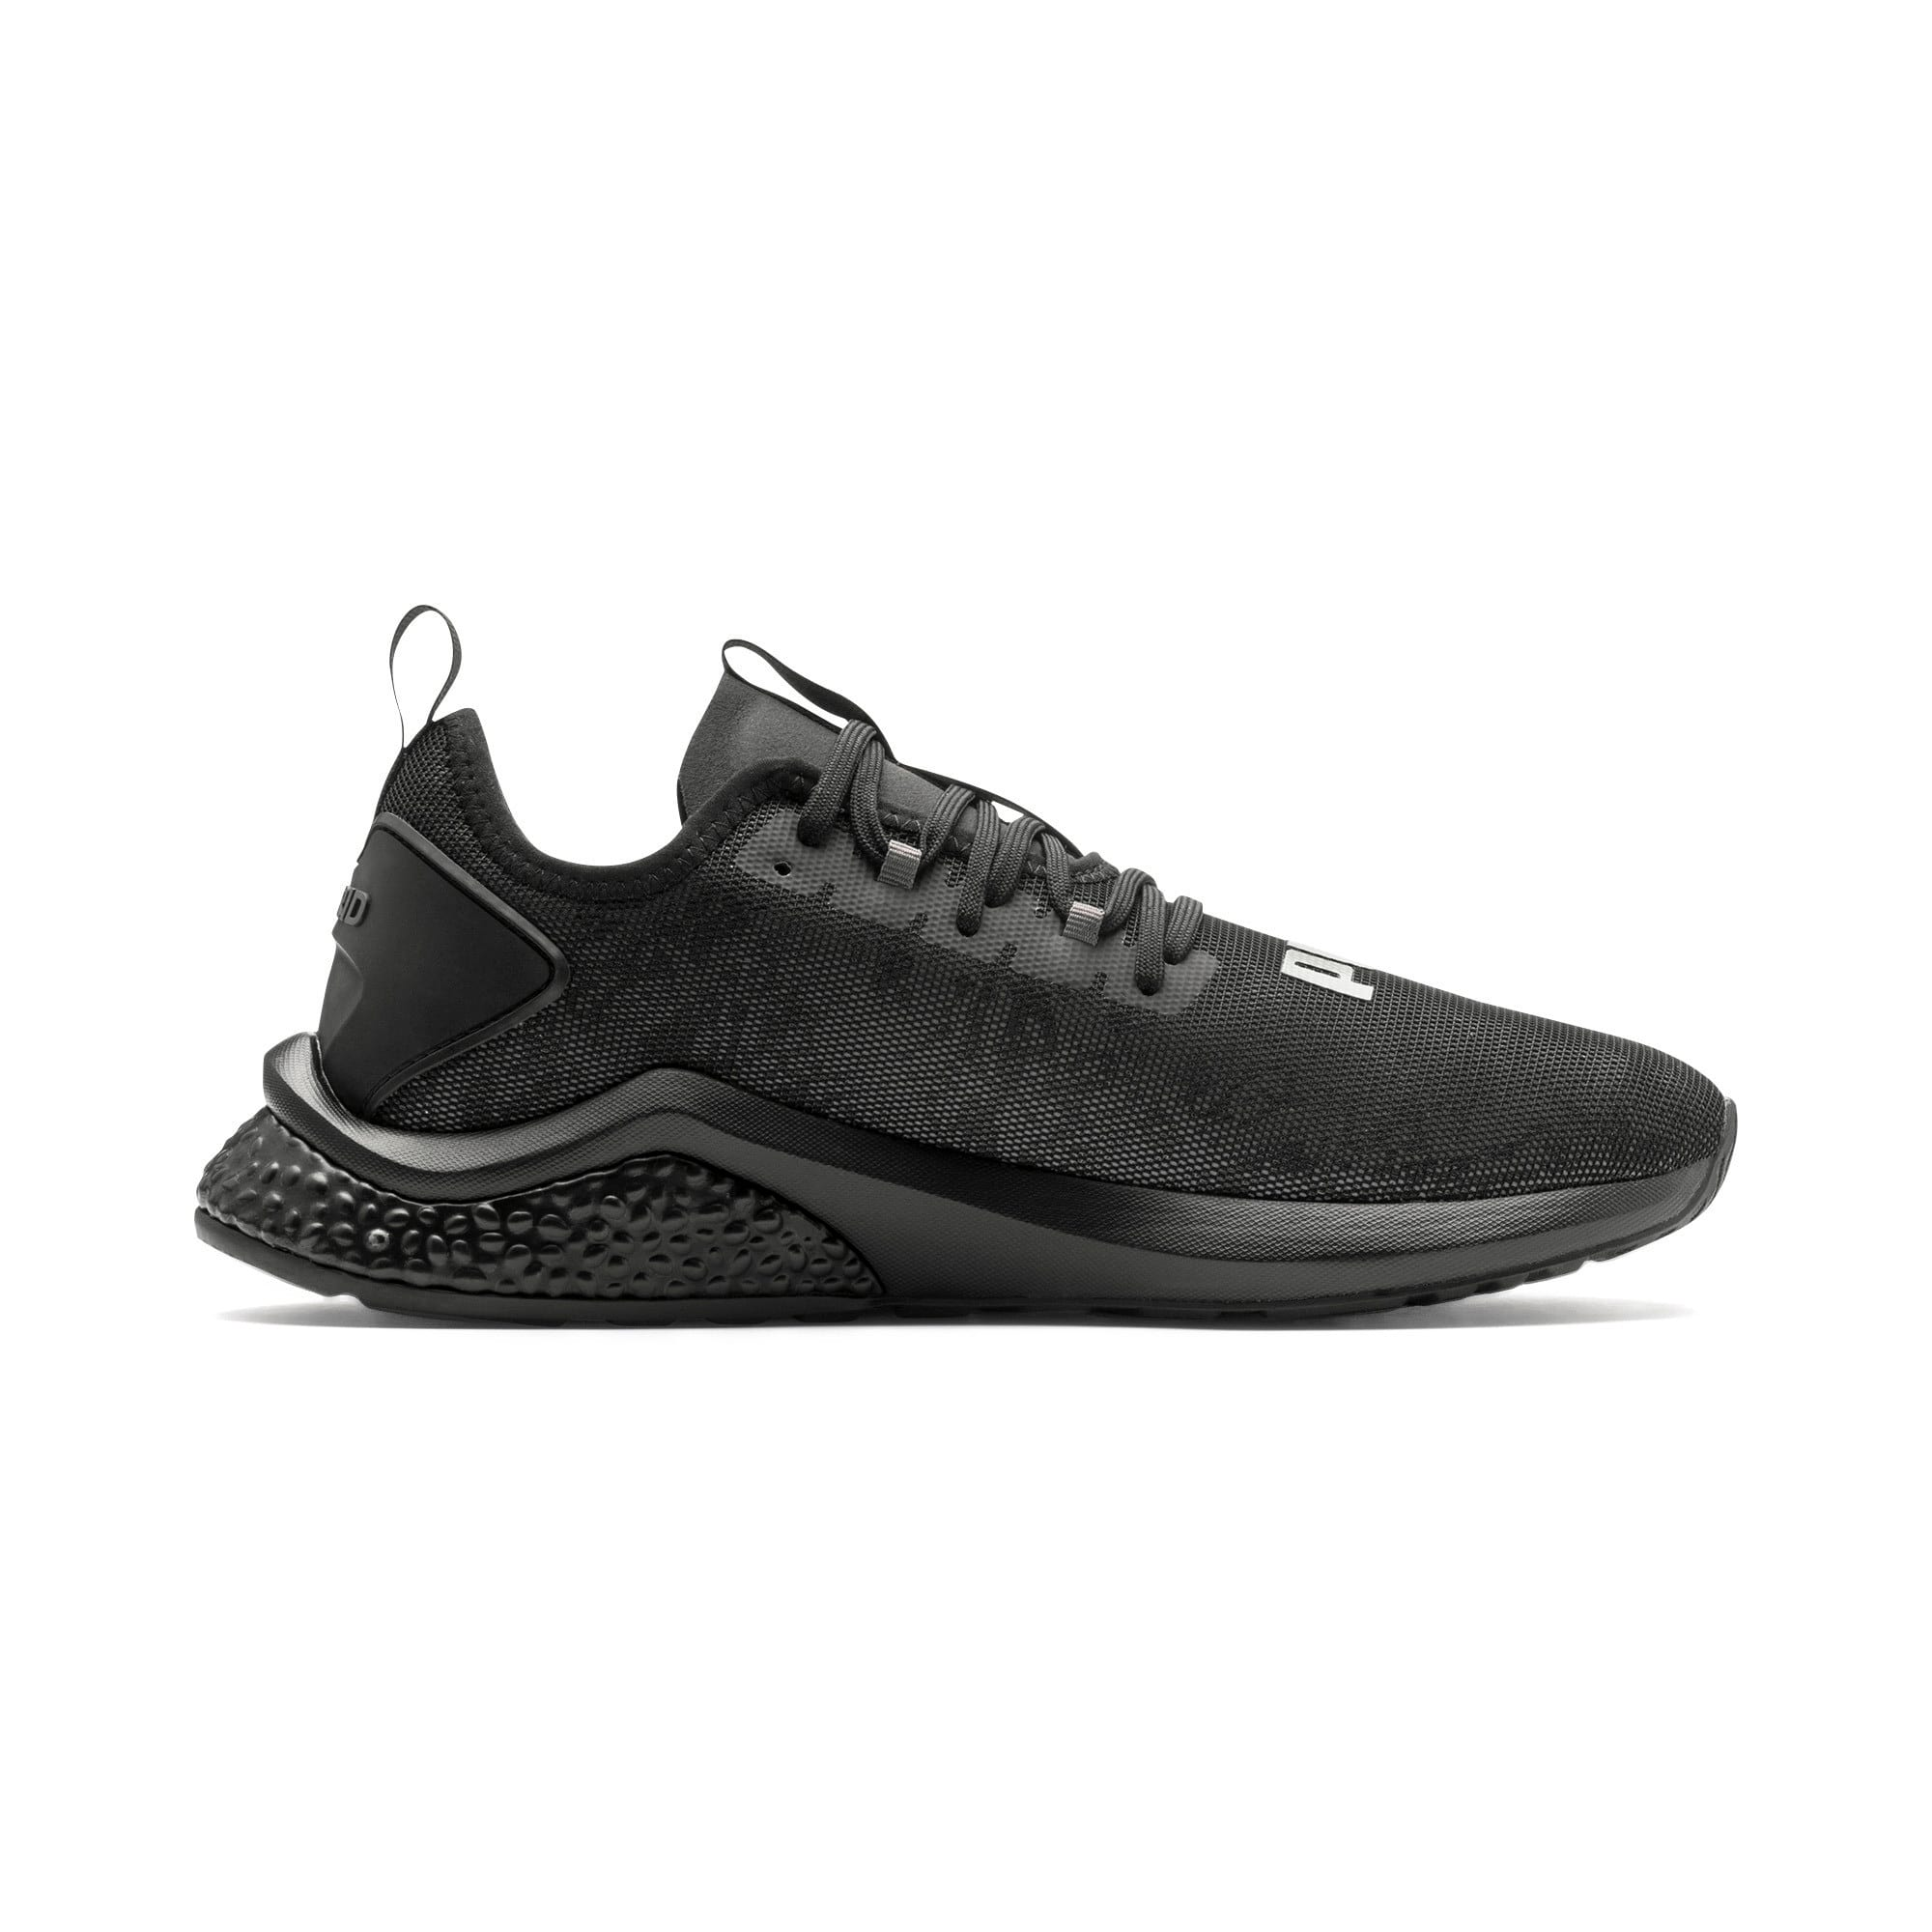 Thumbnail 6 of Chaussure de course HYBRID NX Rave pour homme, Puma Black, medium